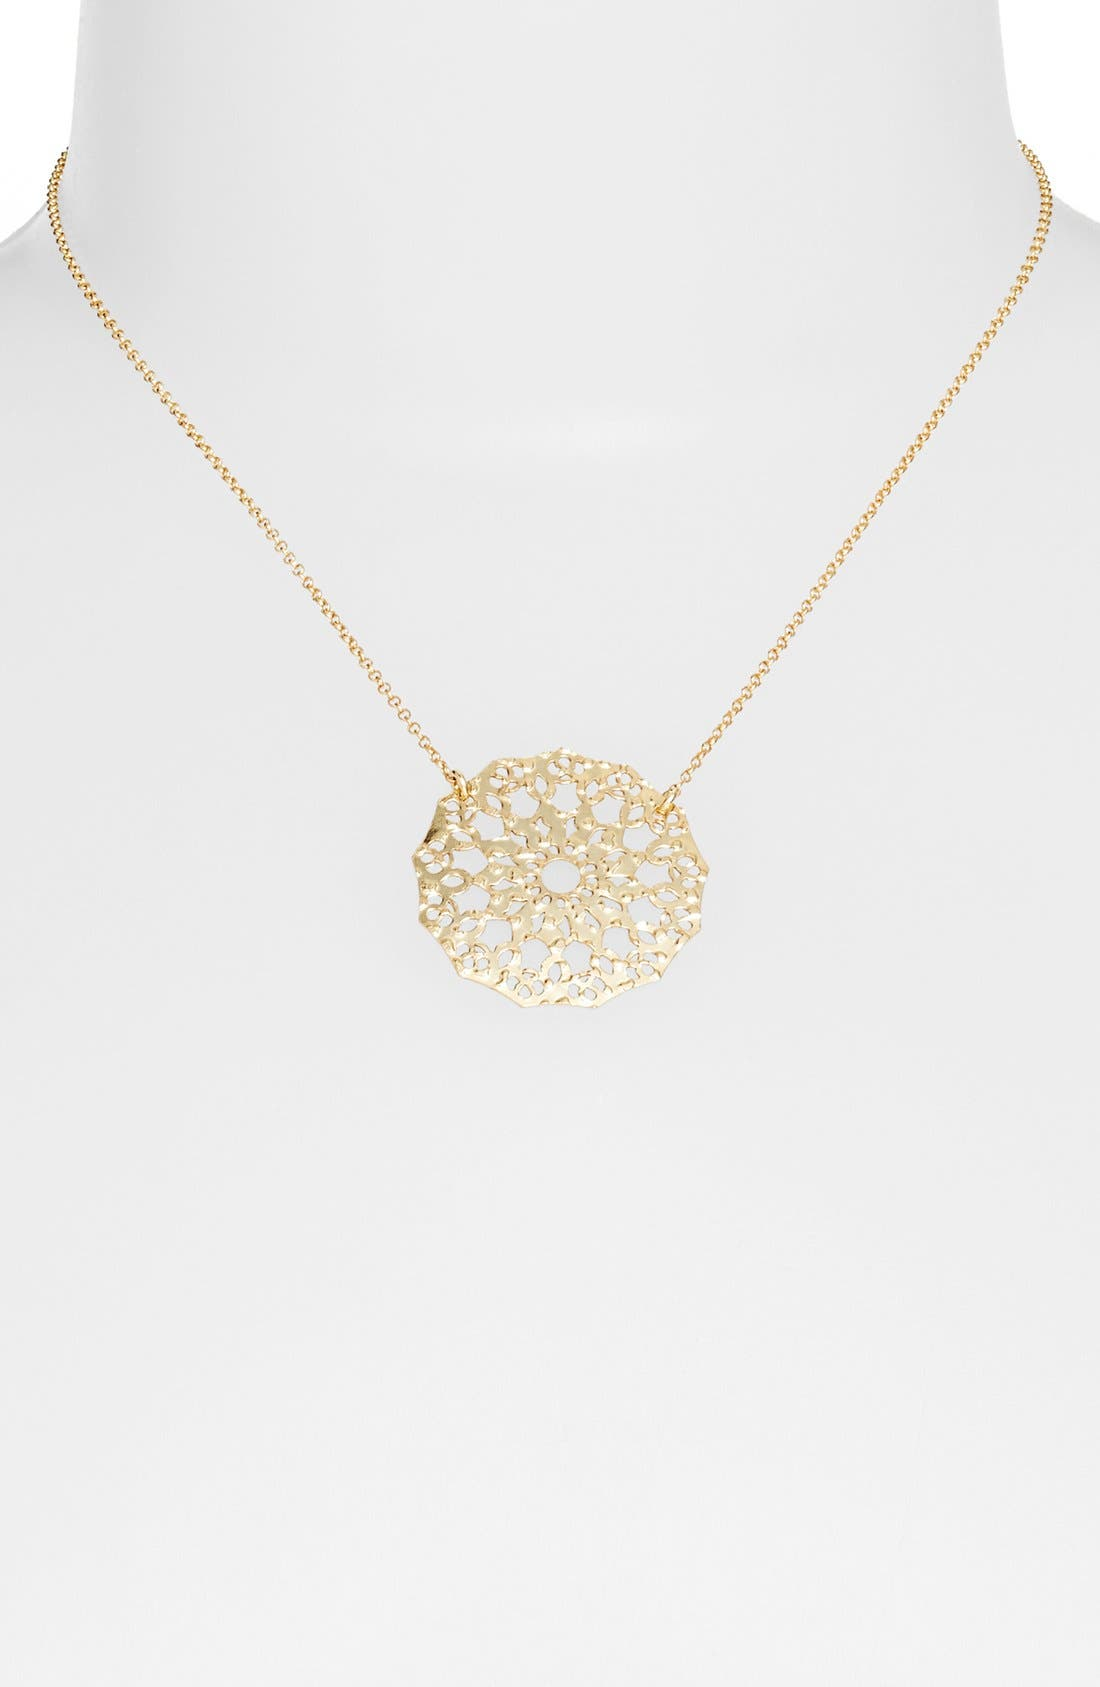 Alternate Image 1 Selected - Argento Vivo Laser Cut Circle Necklace (Online Only)